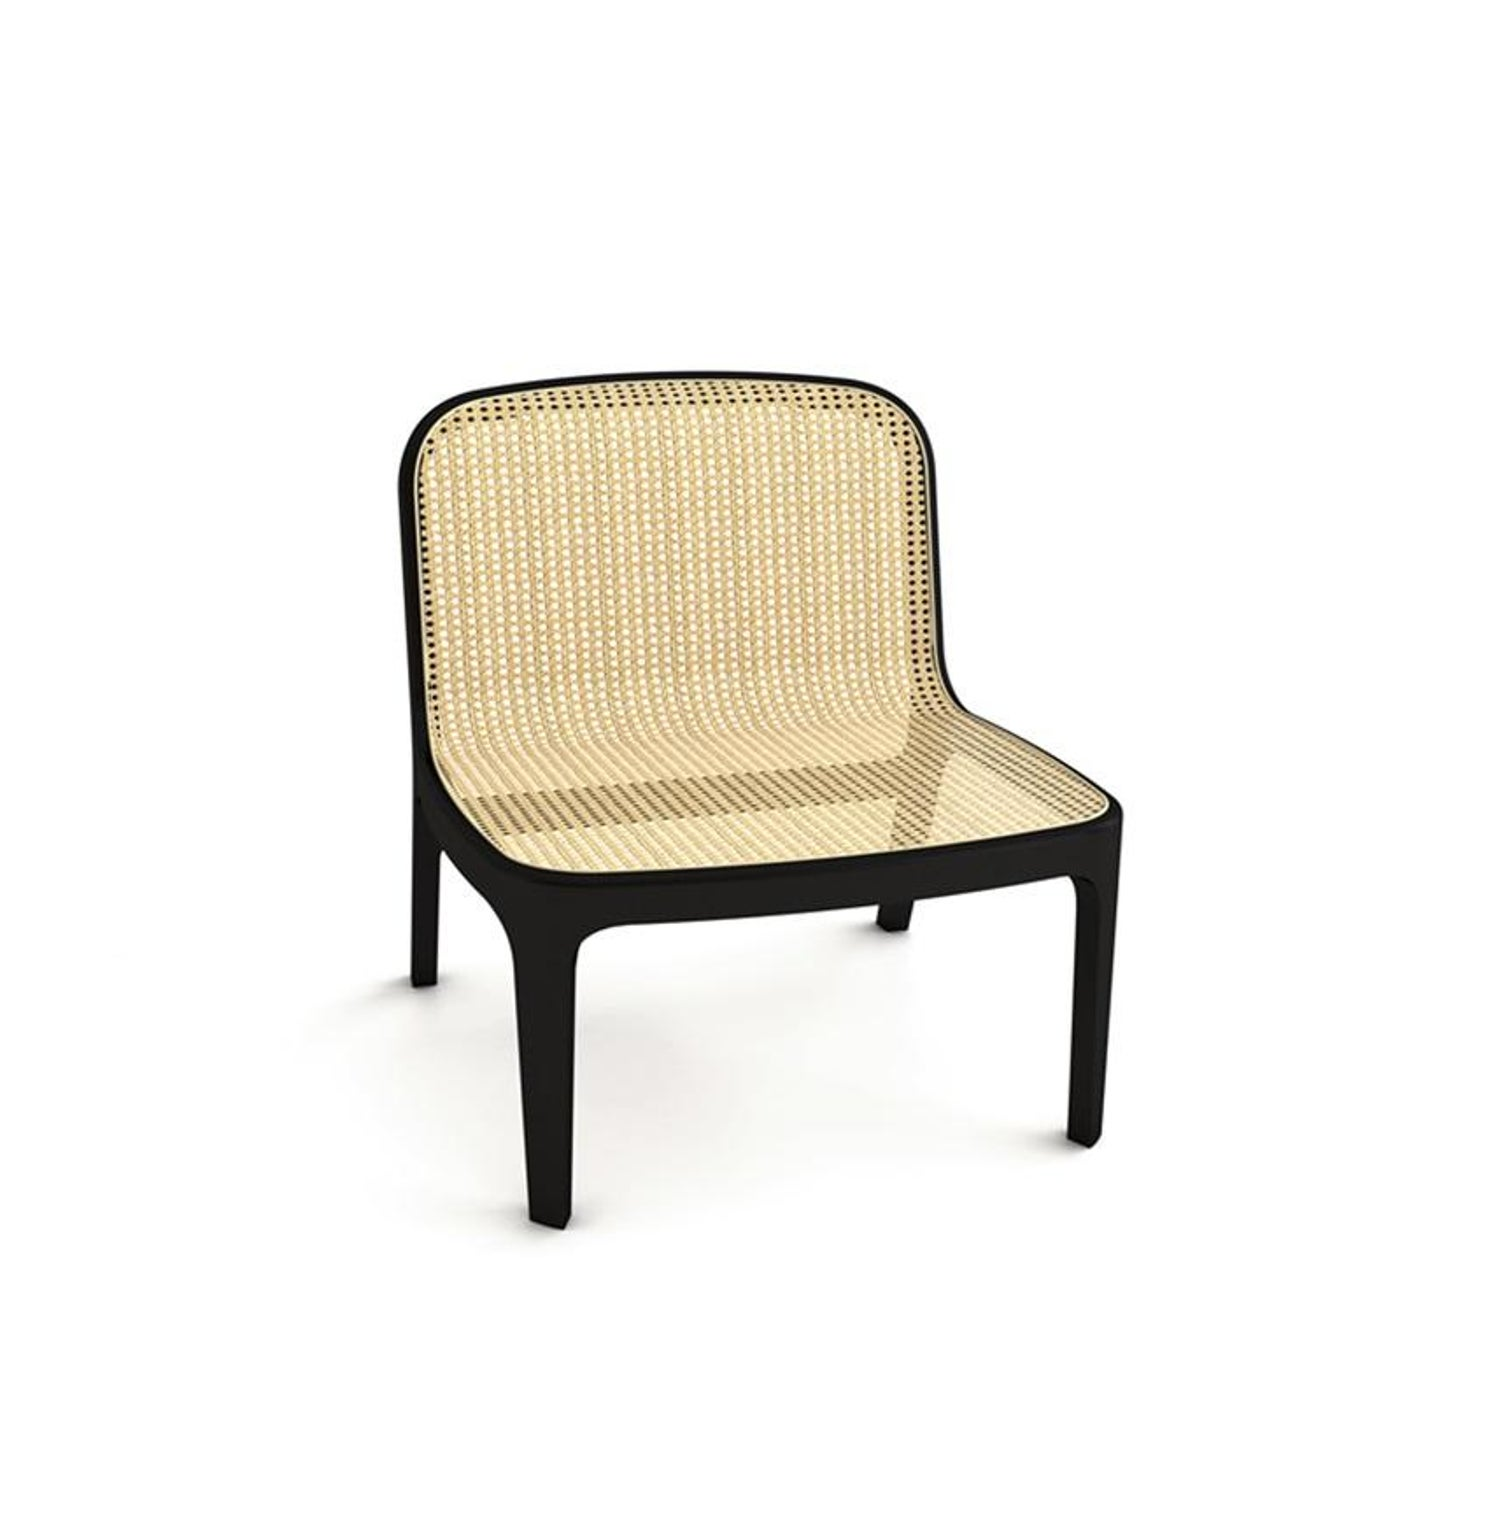 Studio Jean Marc Gady fabian lounge chair, contemporary french cane lounge chair